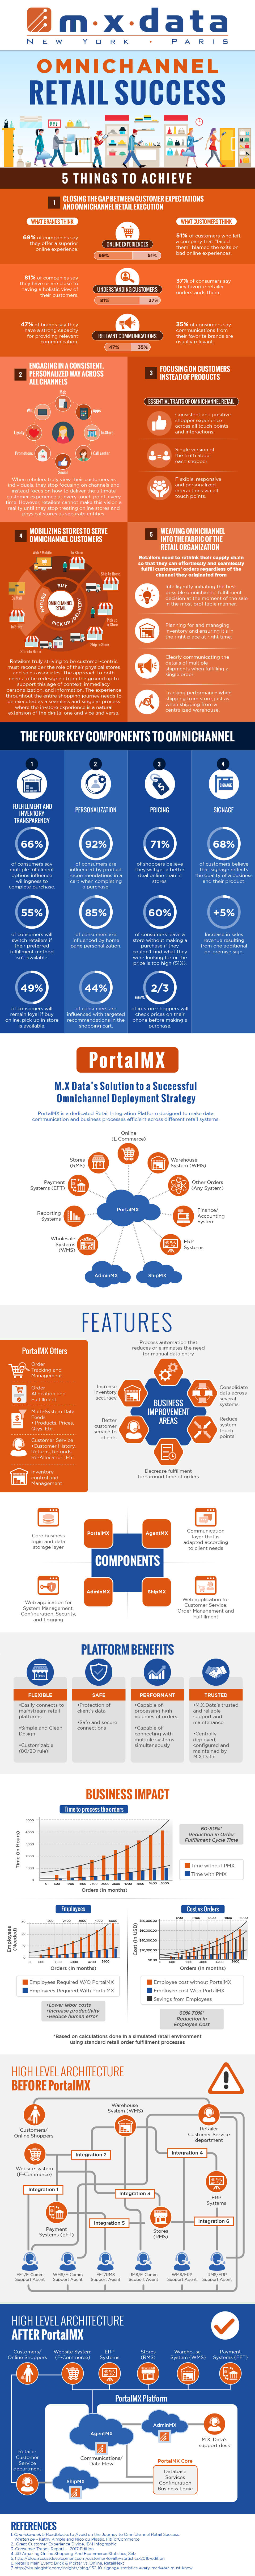 Guide-To-Omnichannel-Retail-Success-Infographic-plaza